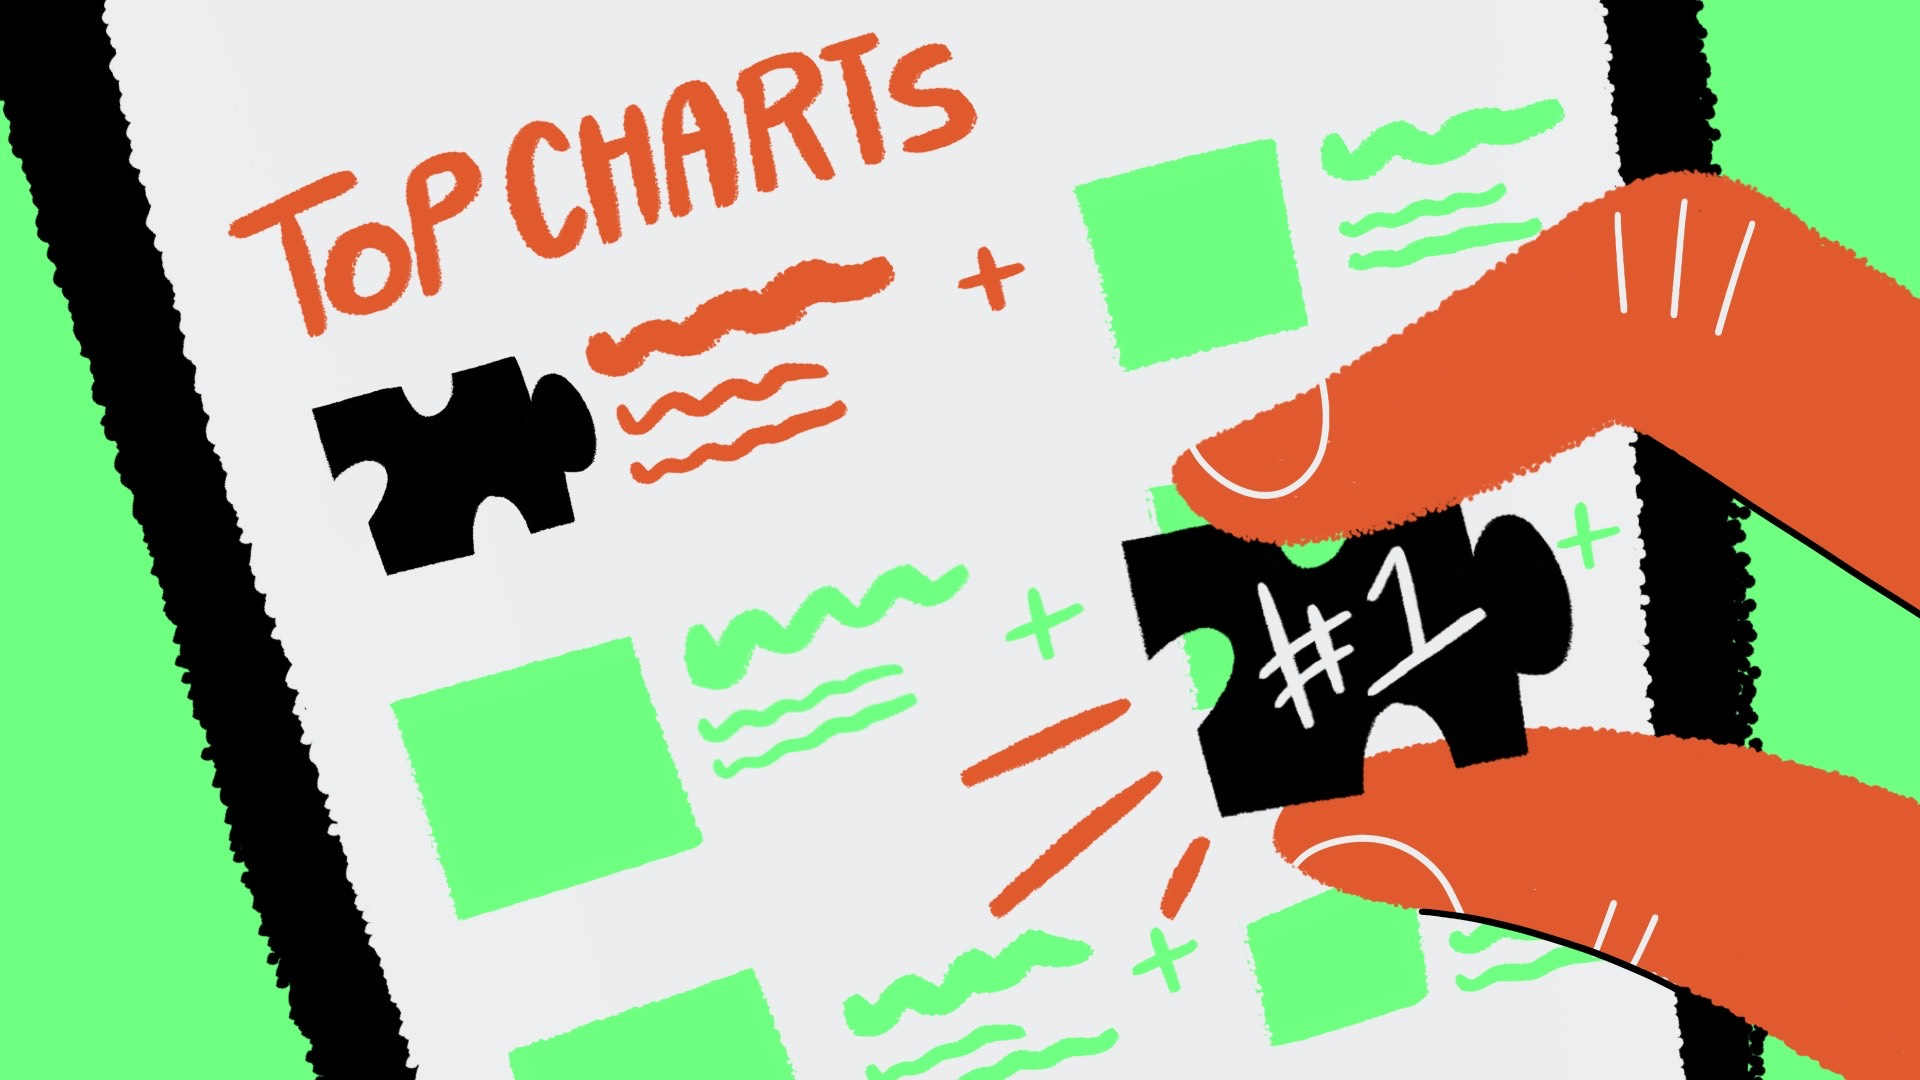 Apple Podcast Charts - Making Podcasts